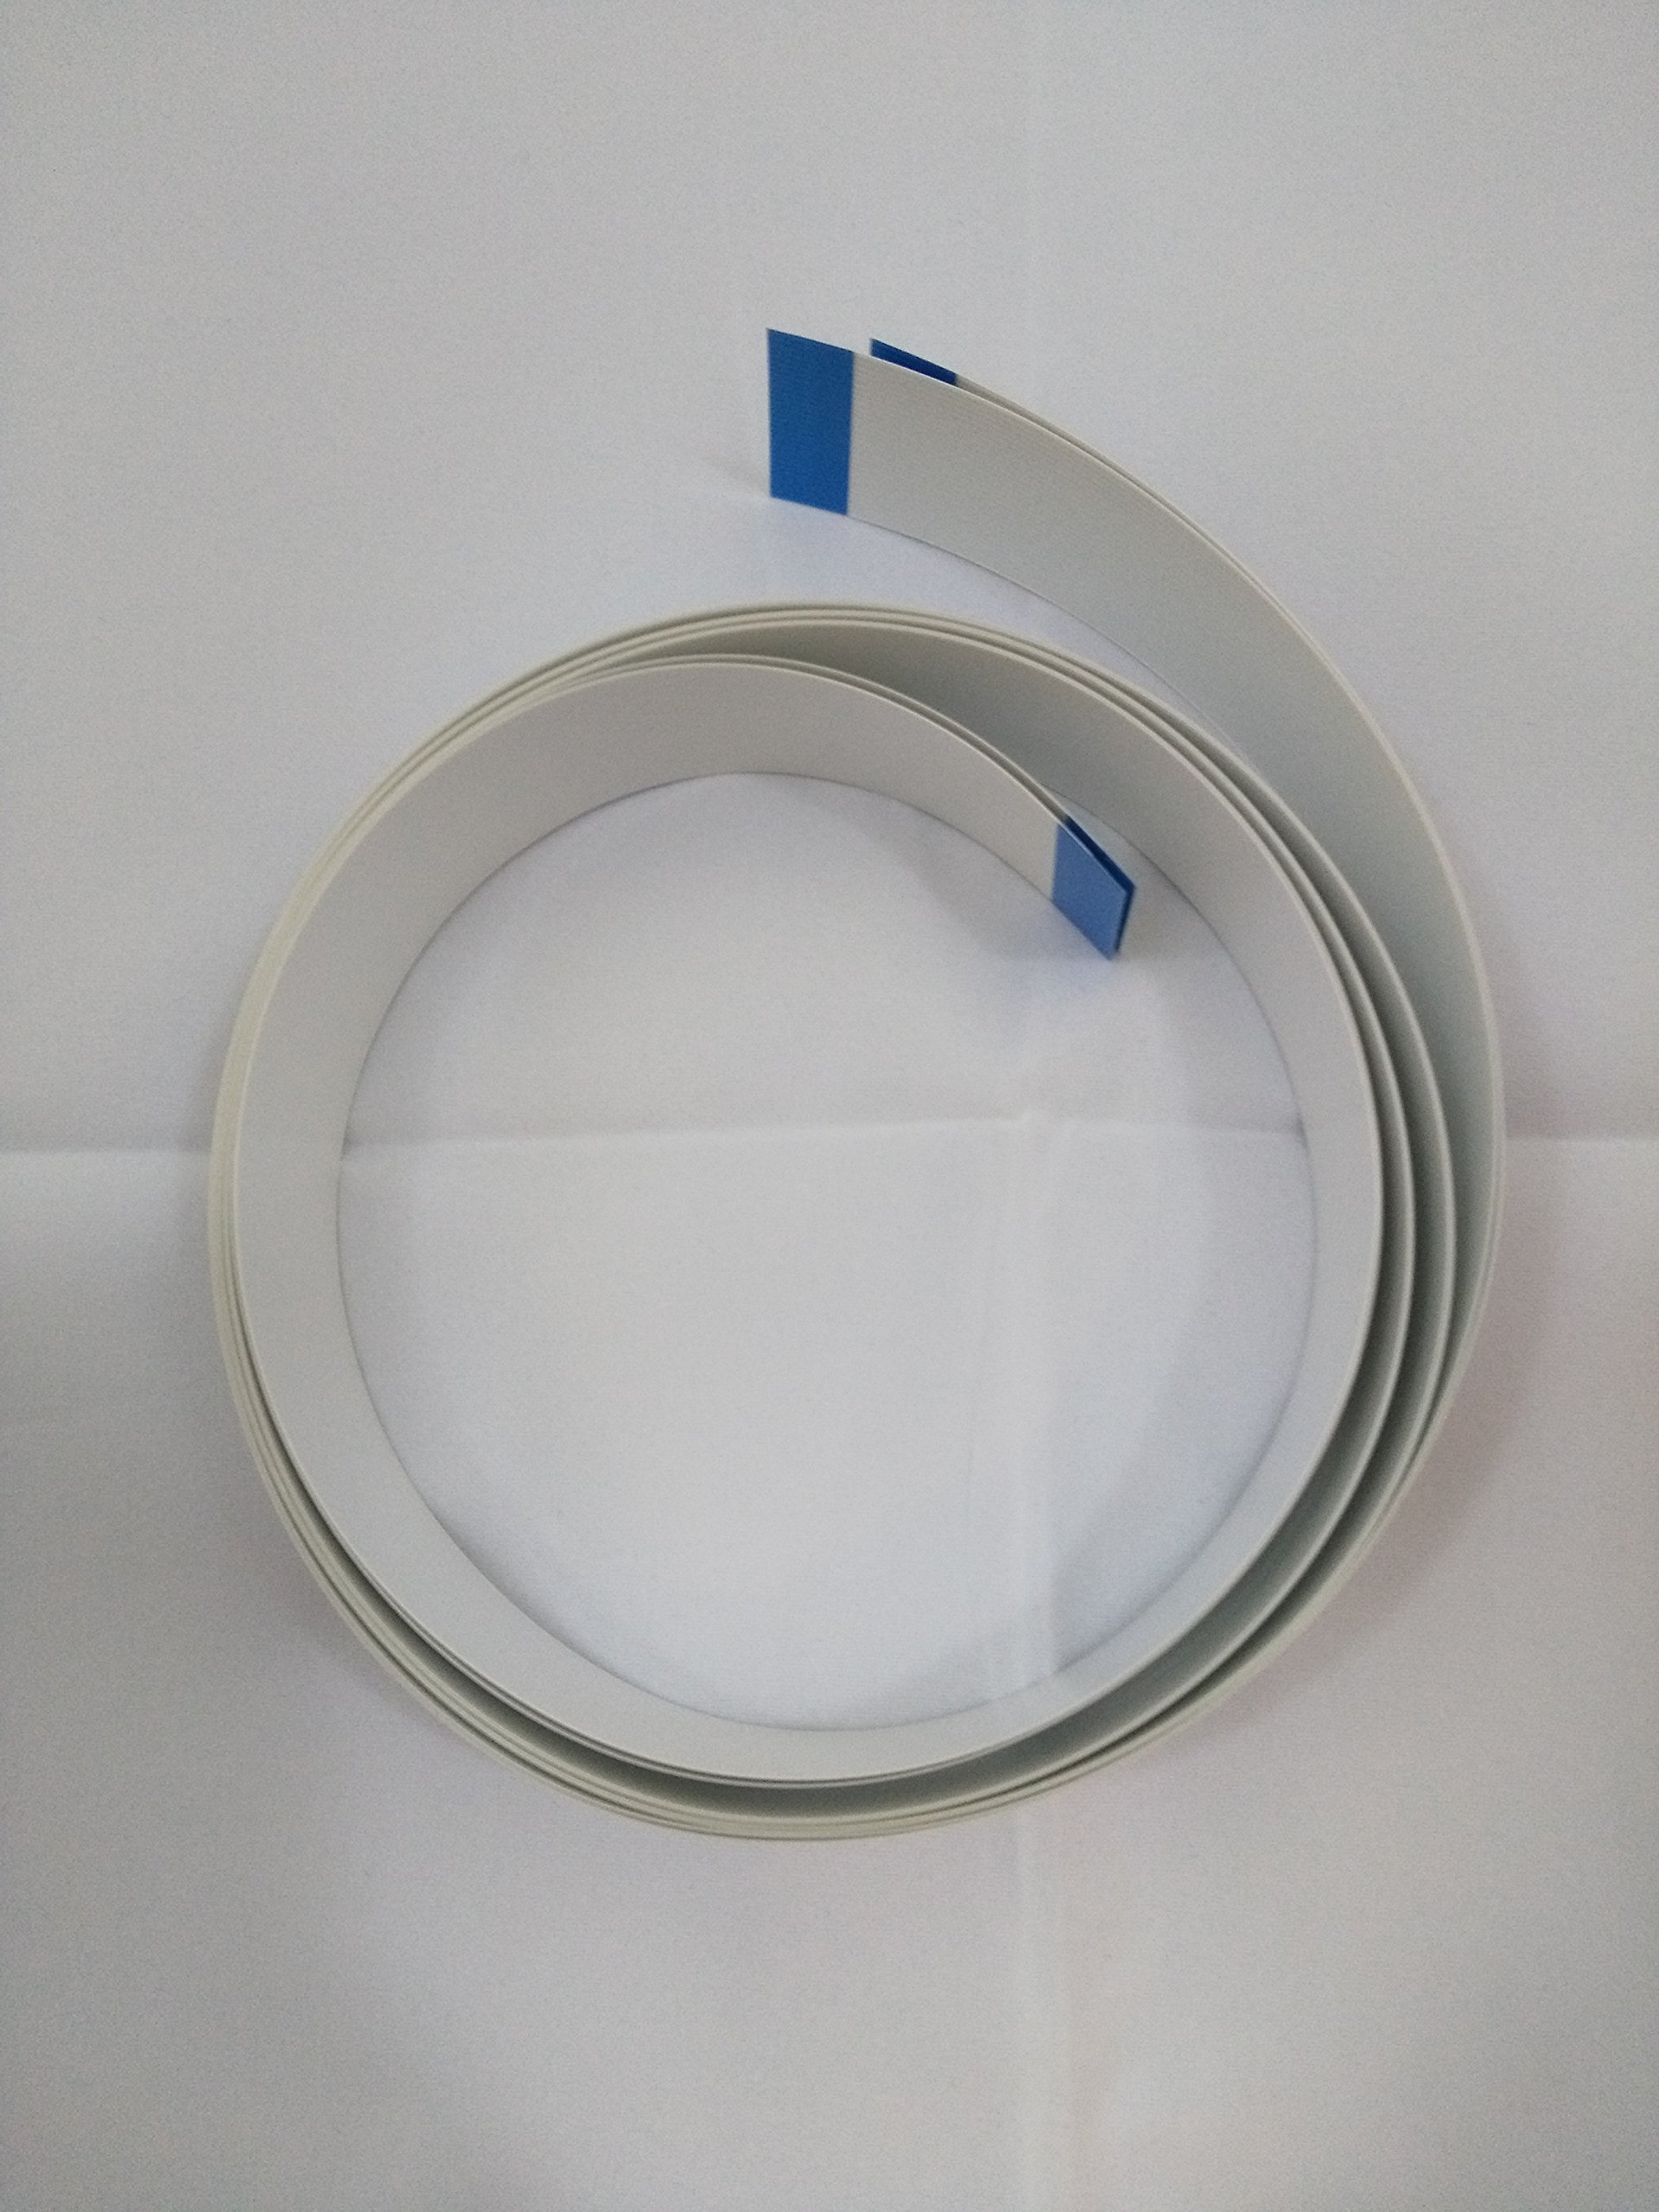 Boracell compatible with C7769-60305, HP DesignJet 500 24'' Trailing Cable